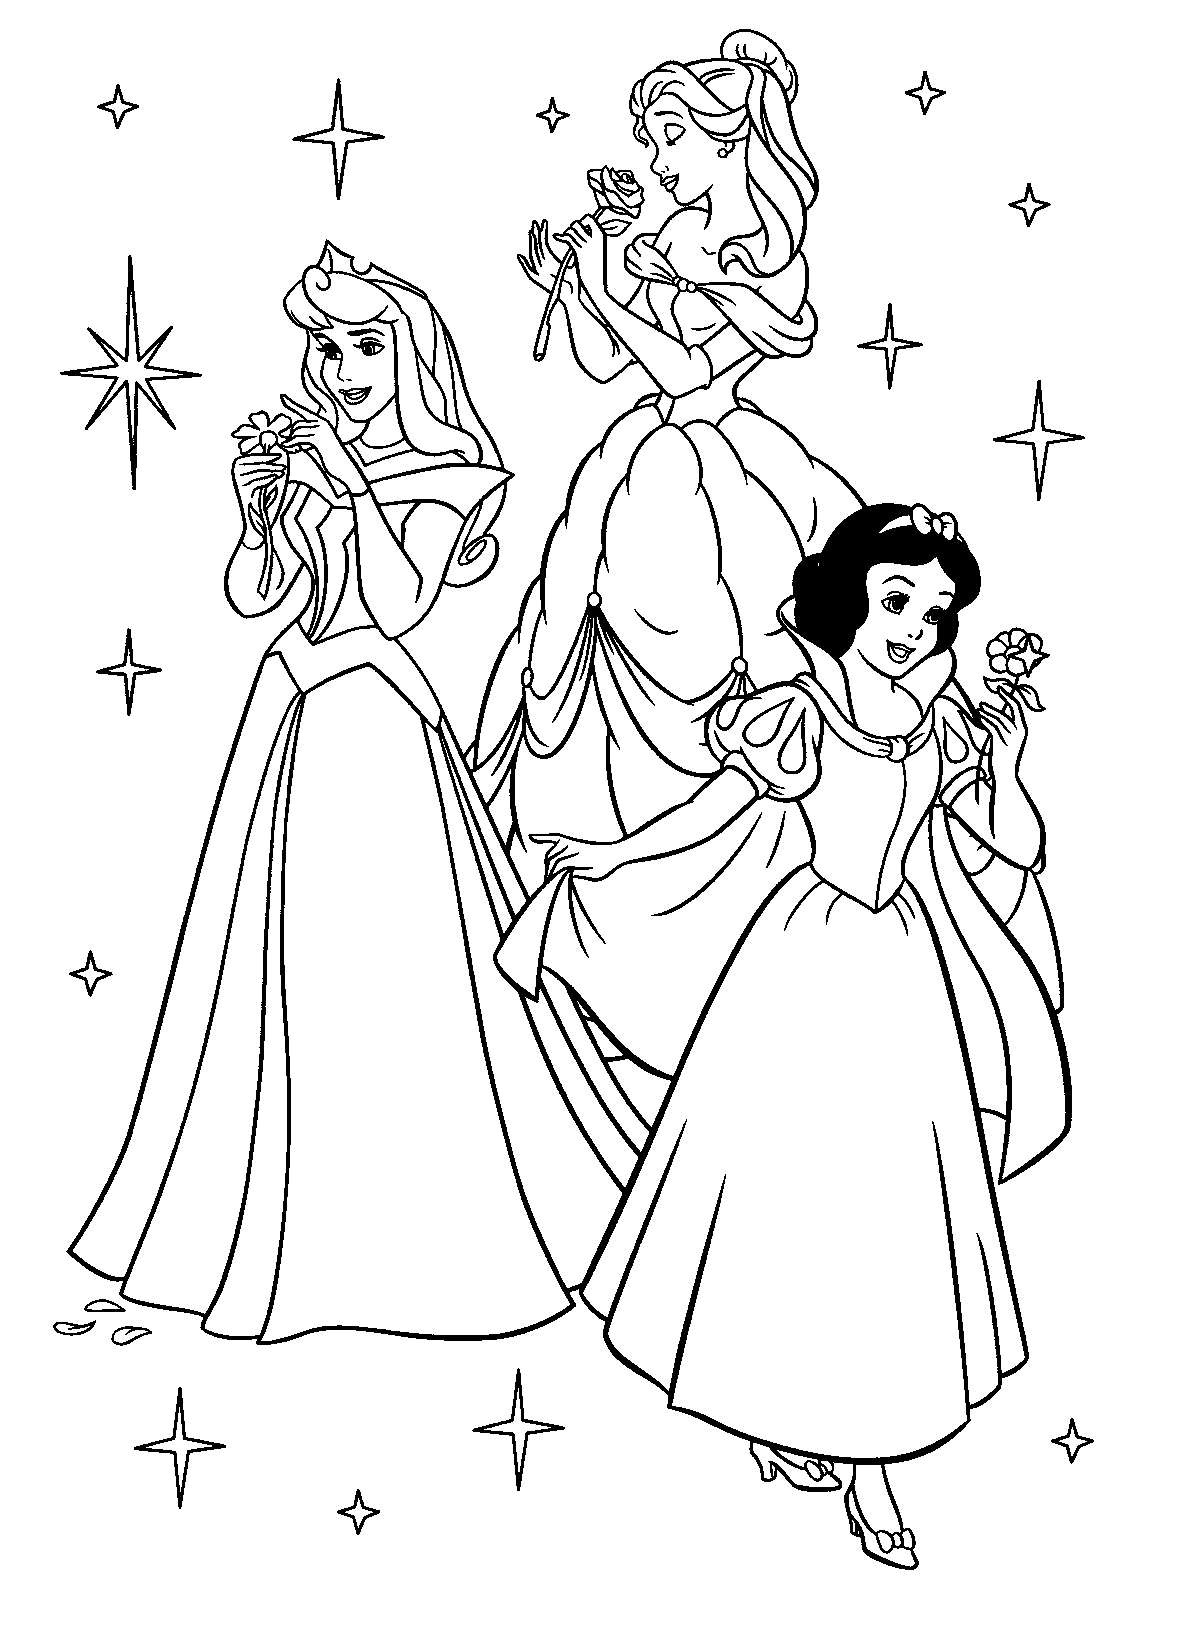 Colouring Pages Disney Princess Printable : Free printable disney princess coloring pages for kids